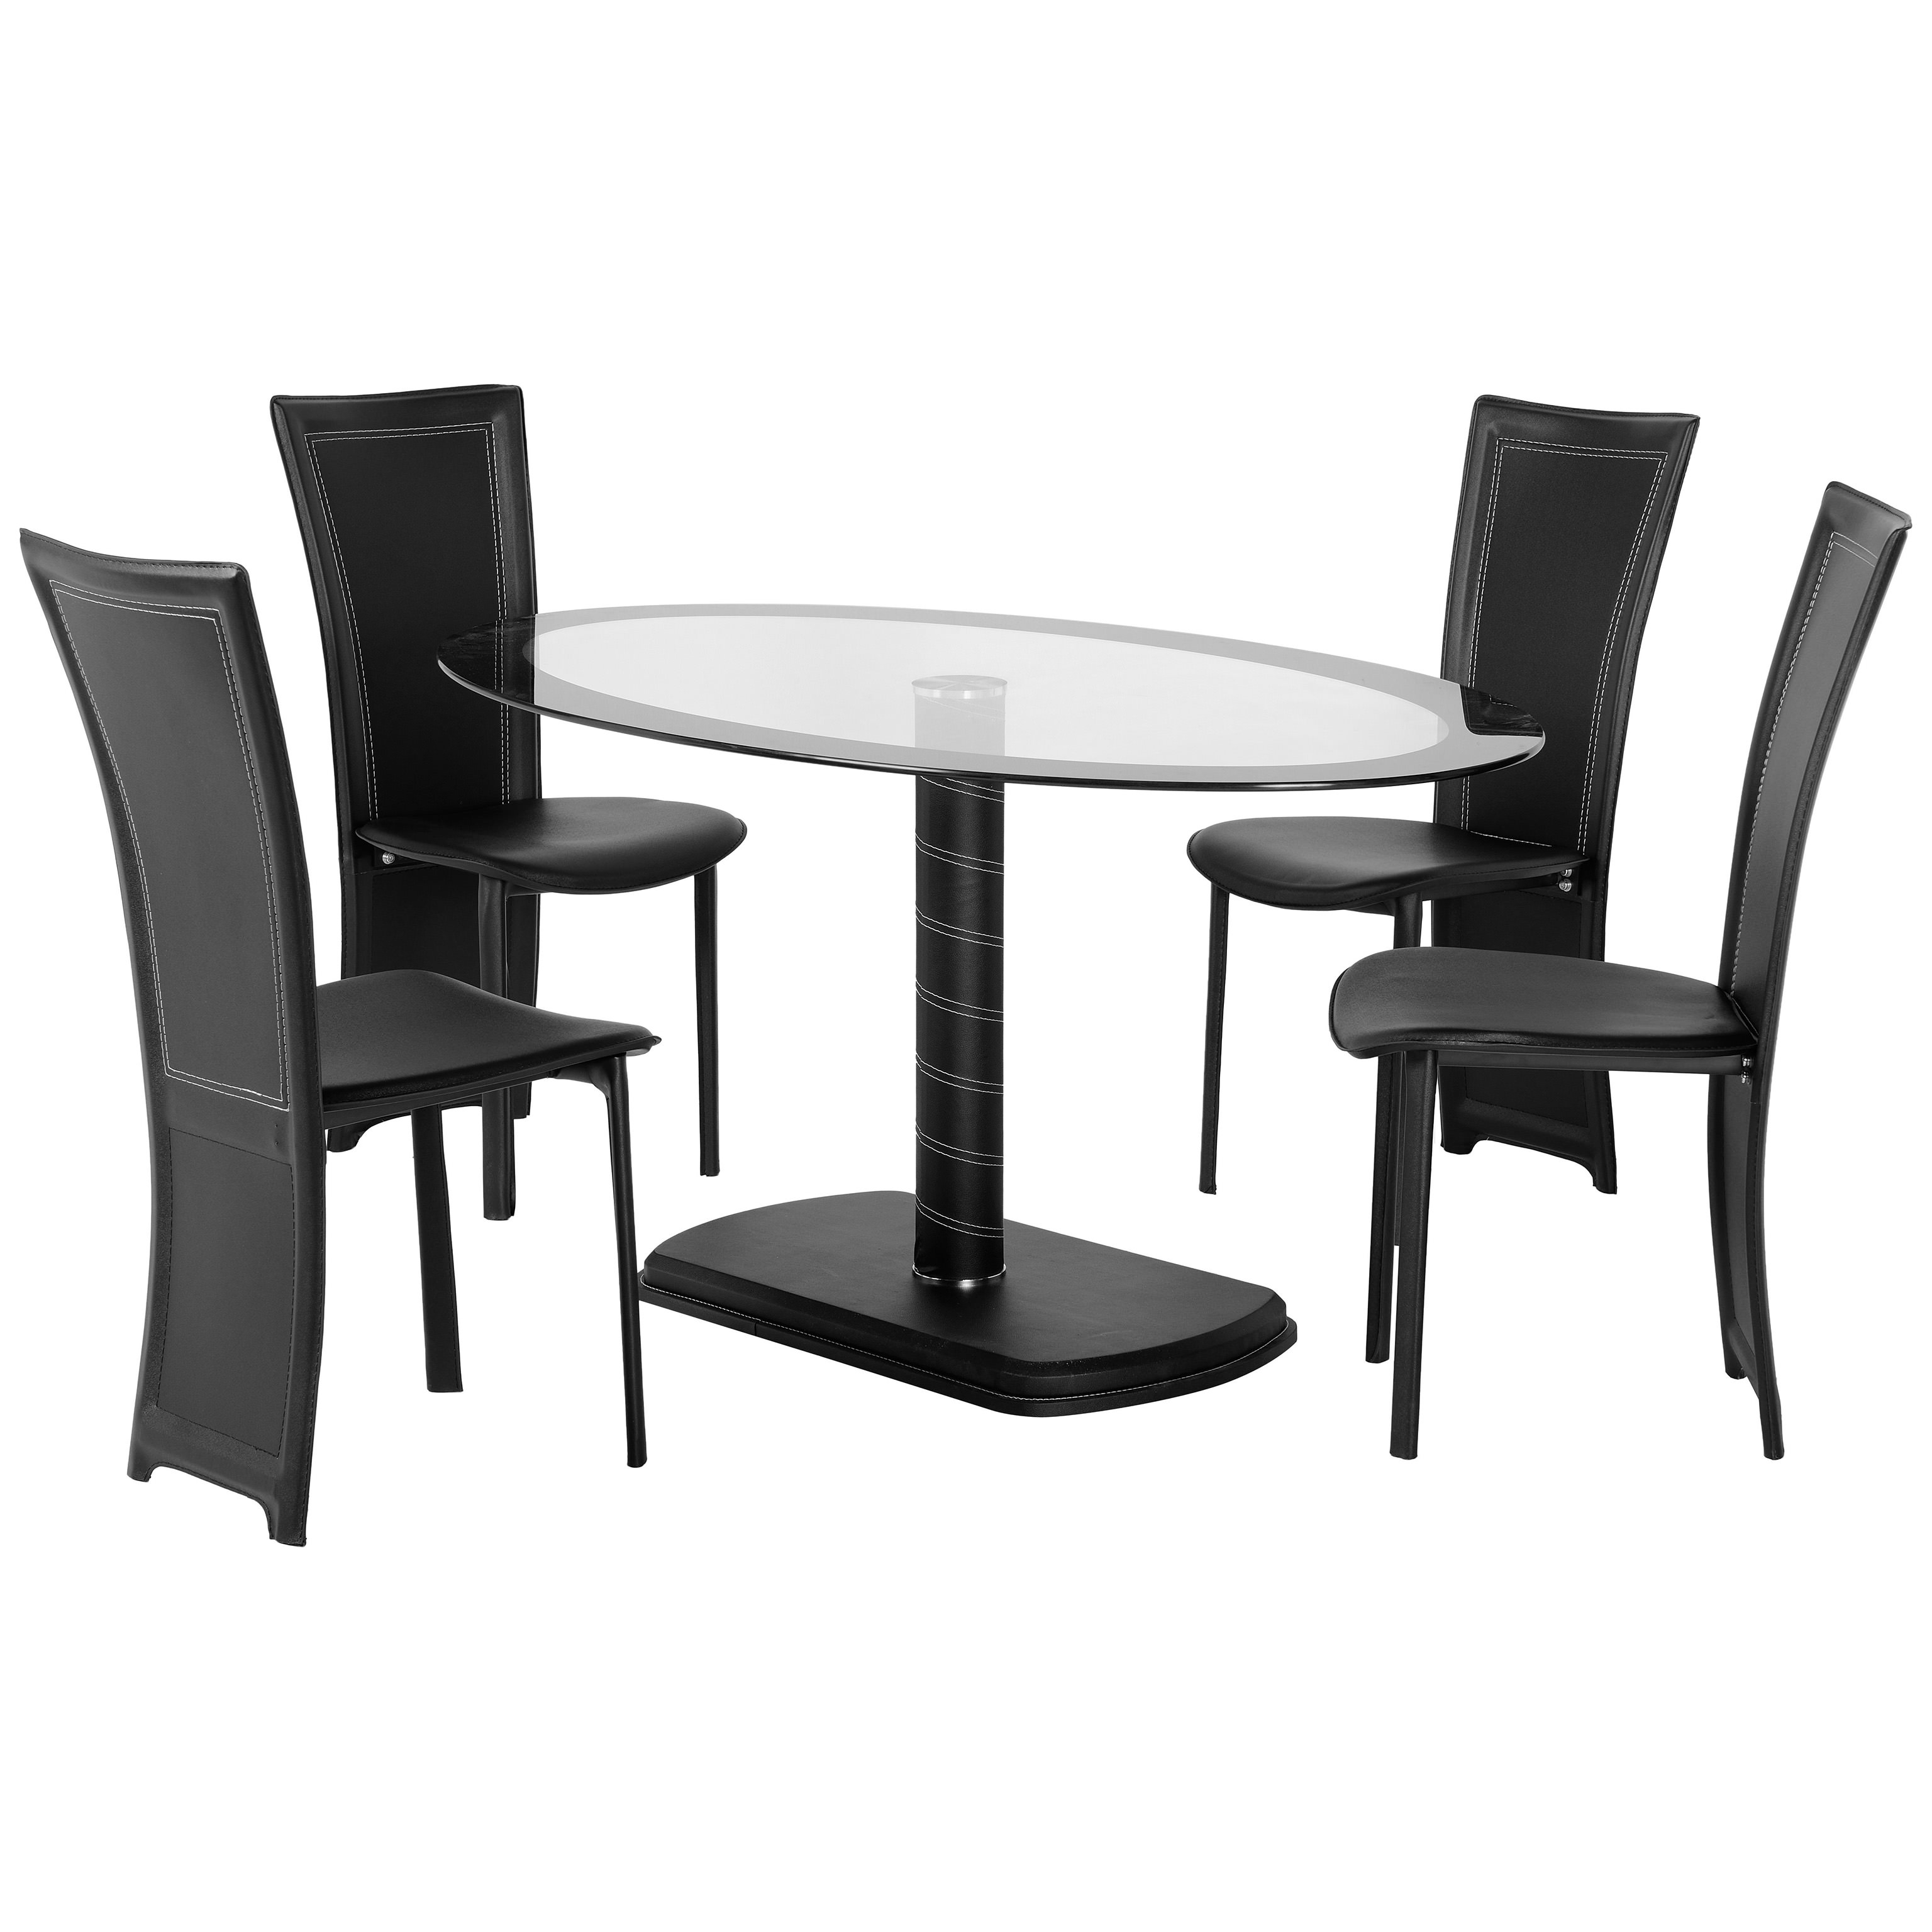 Details About Black & Clear Glass Oval Dining Table And Chair Set With 4  Leather Seats in Favorite Clear Glass Dining Tables And Chairs